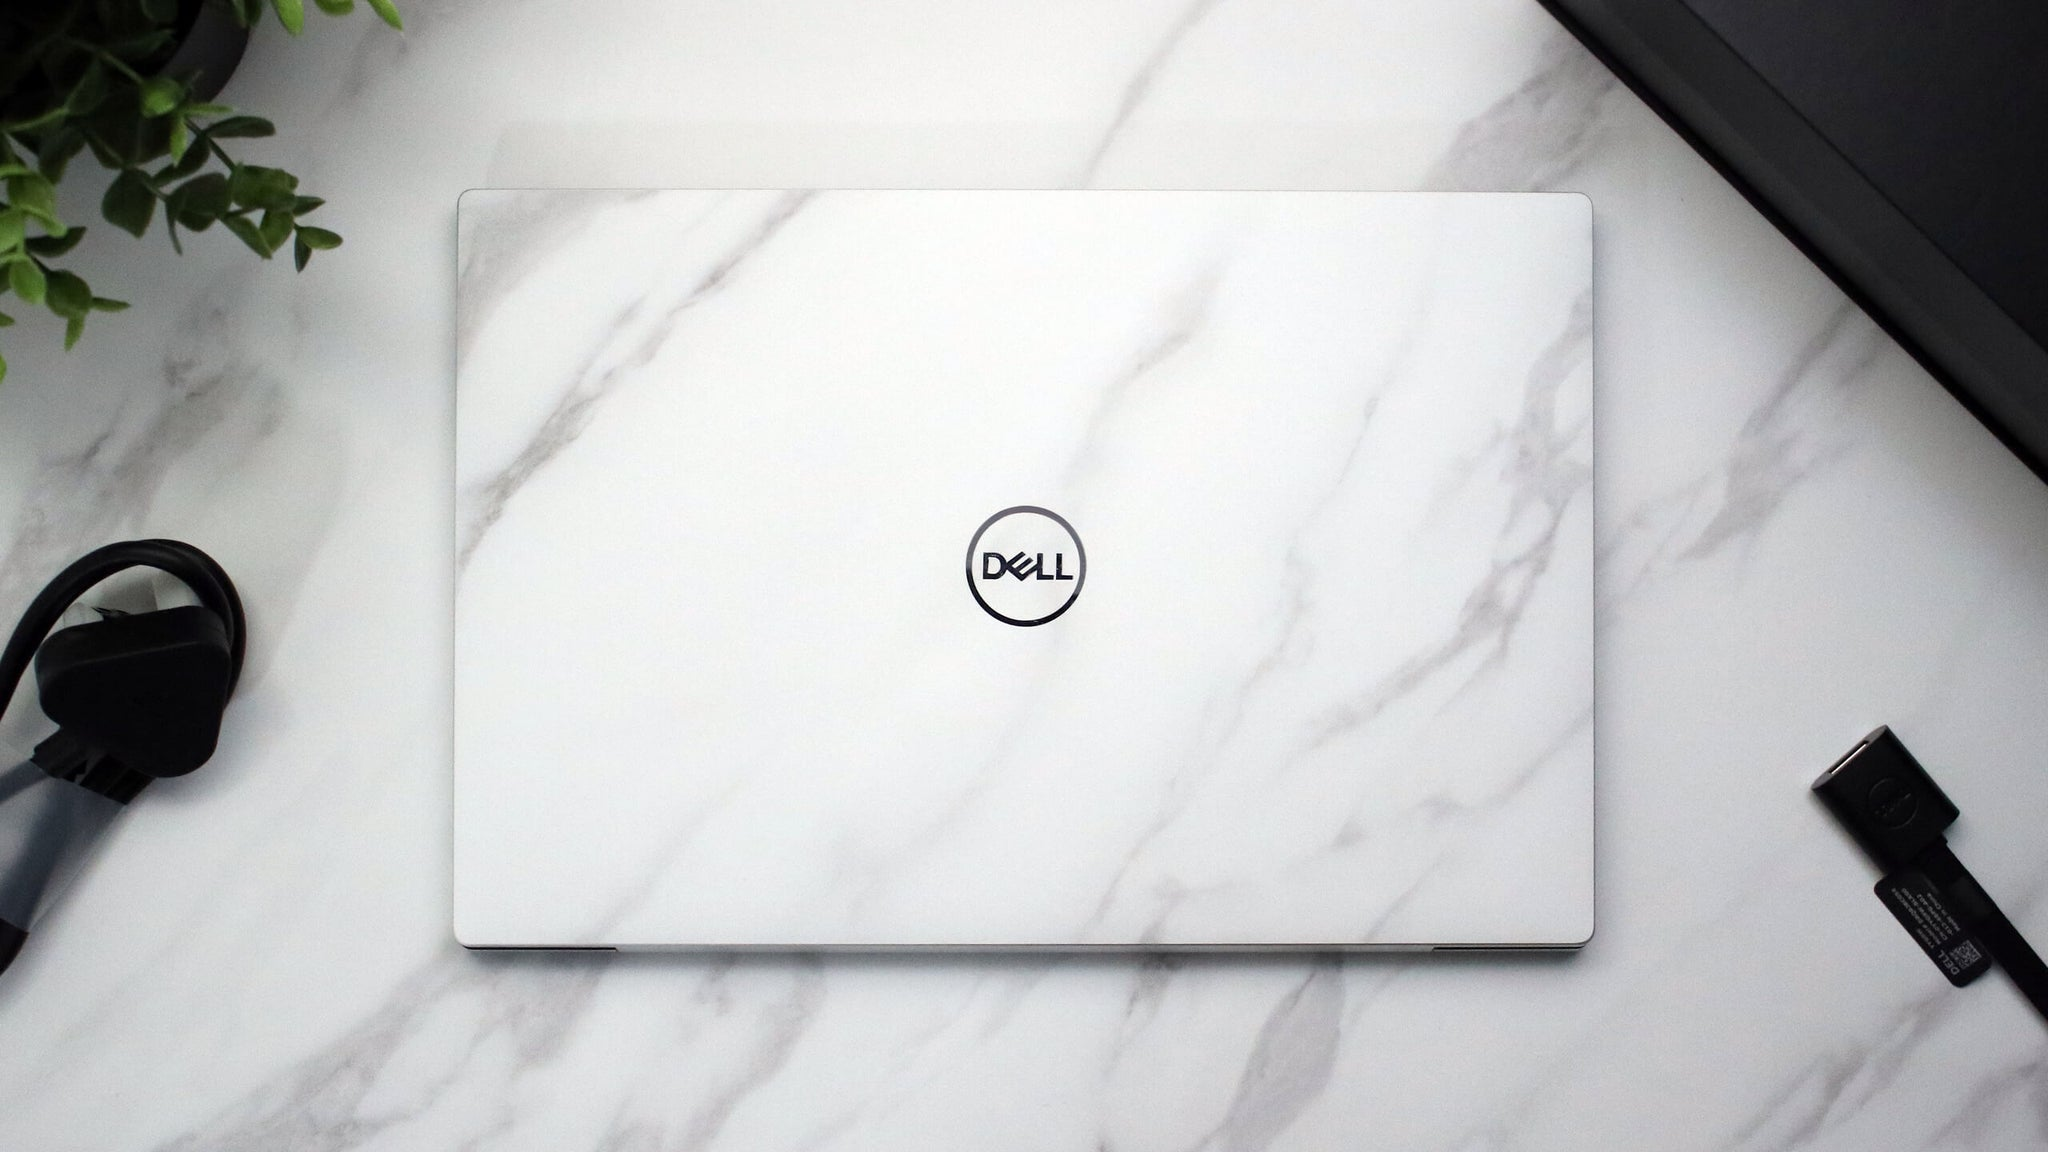 Dell XPS 13 9300 White Marble Skins